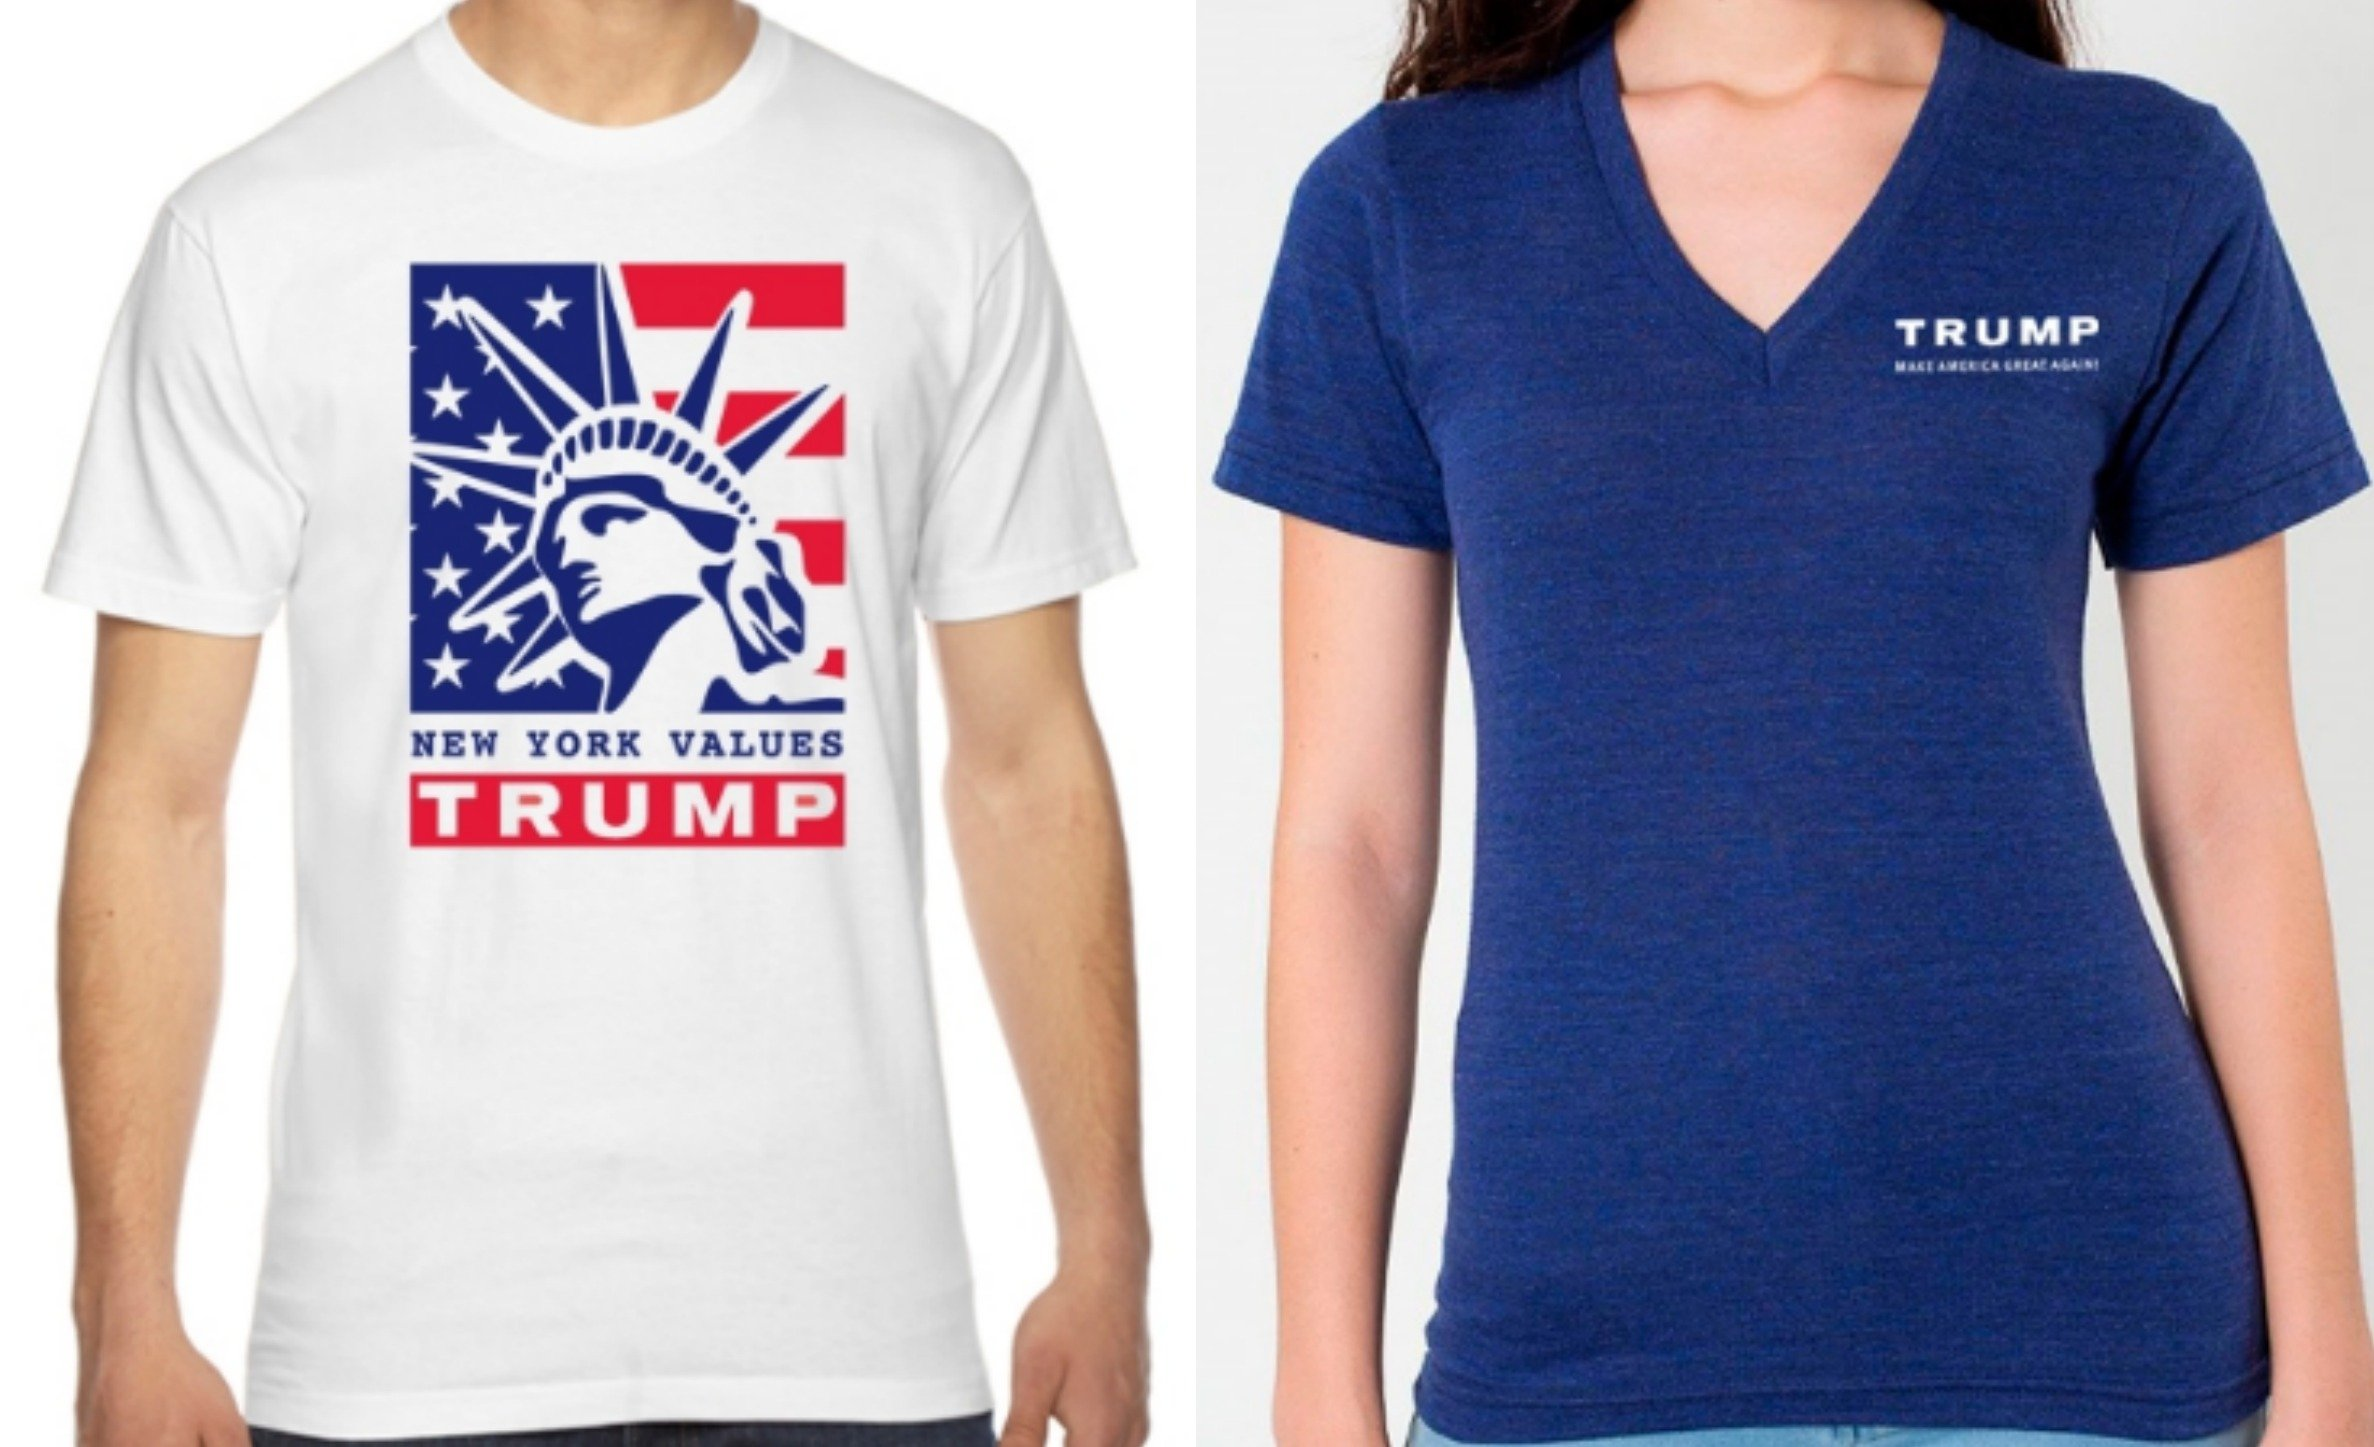 Trumpu2019s tees are pretty standard and all are red, white, and blue ...